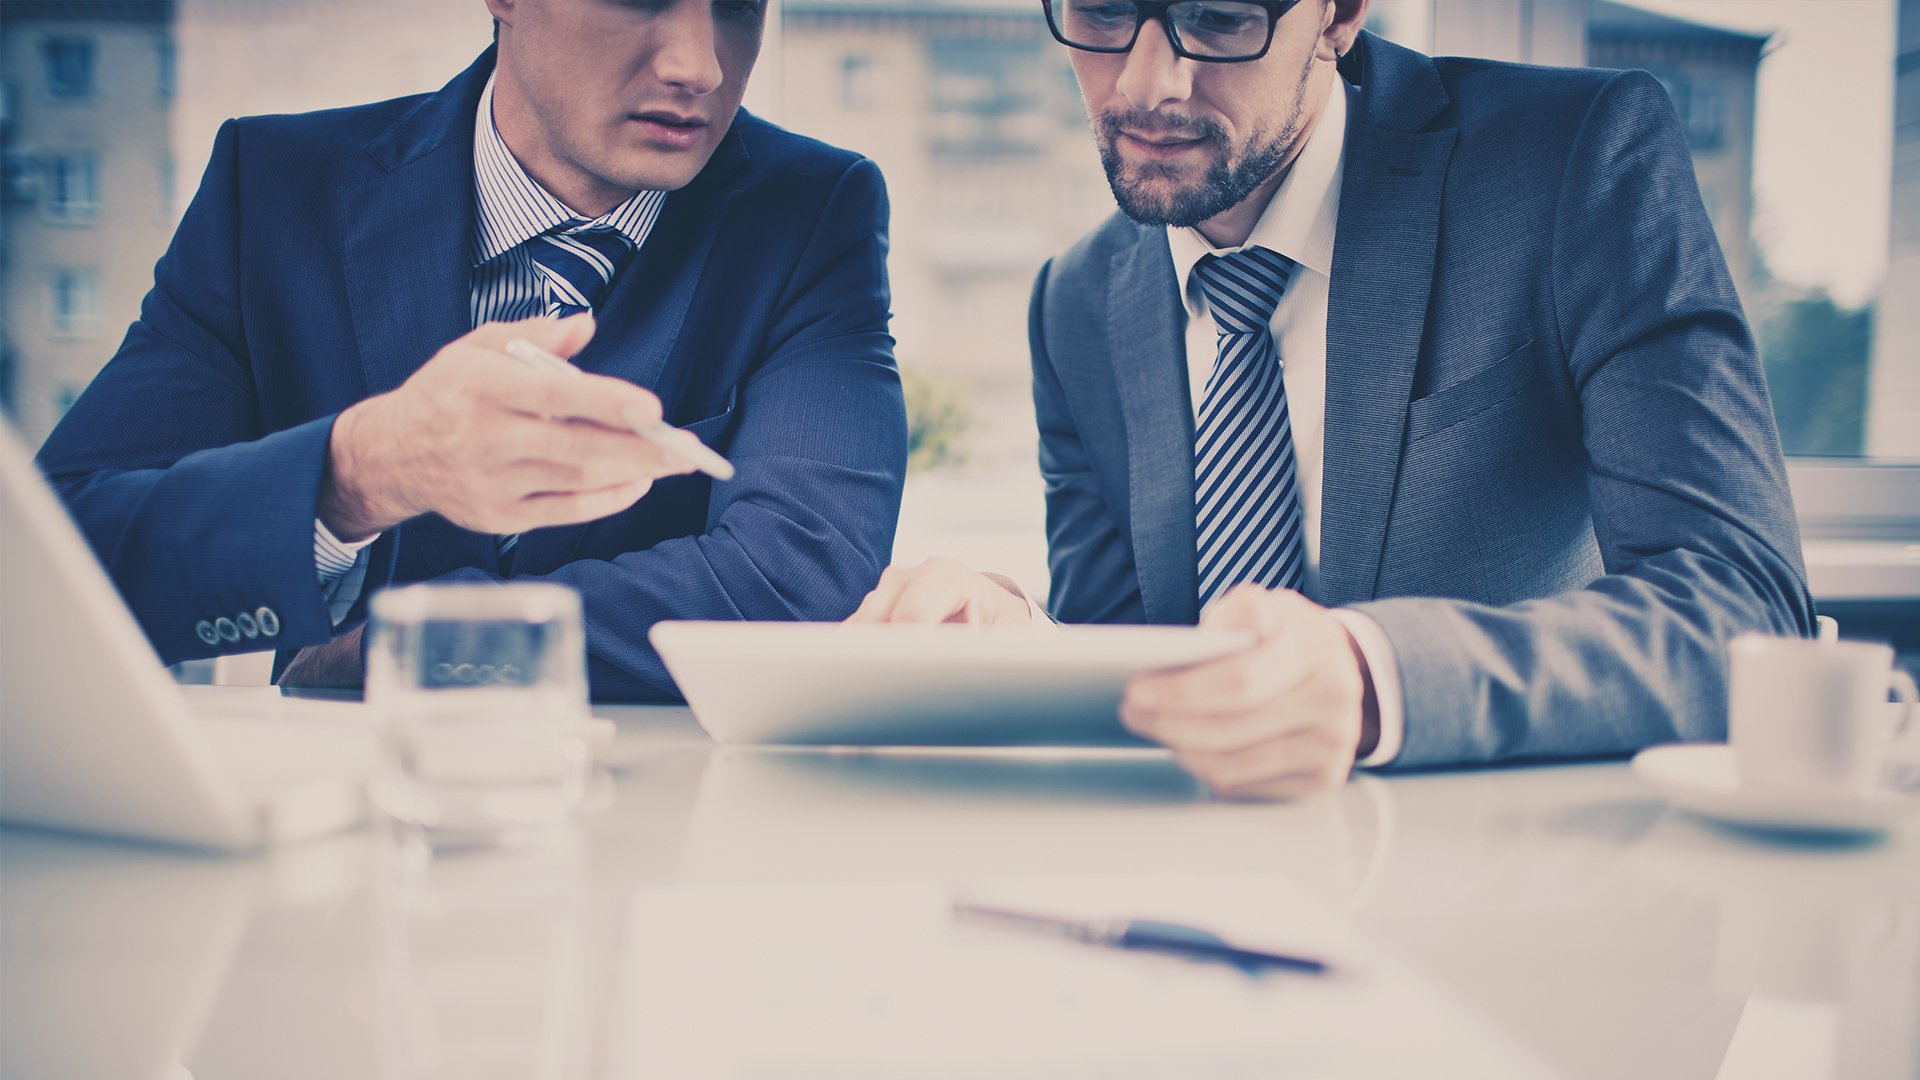 Why One-On-One Meetings Are Essential | Teamwork.com High Performance Blog